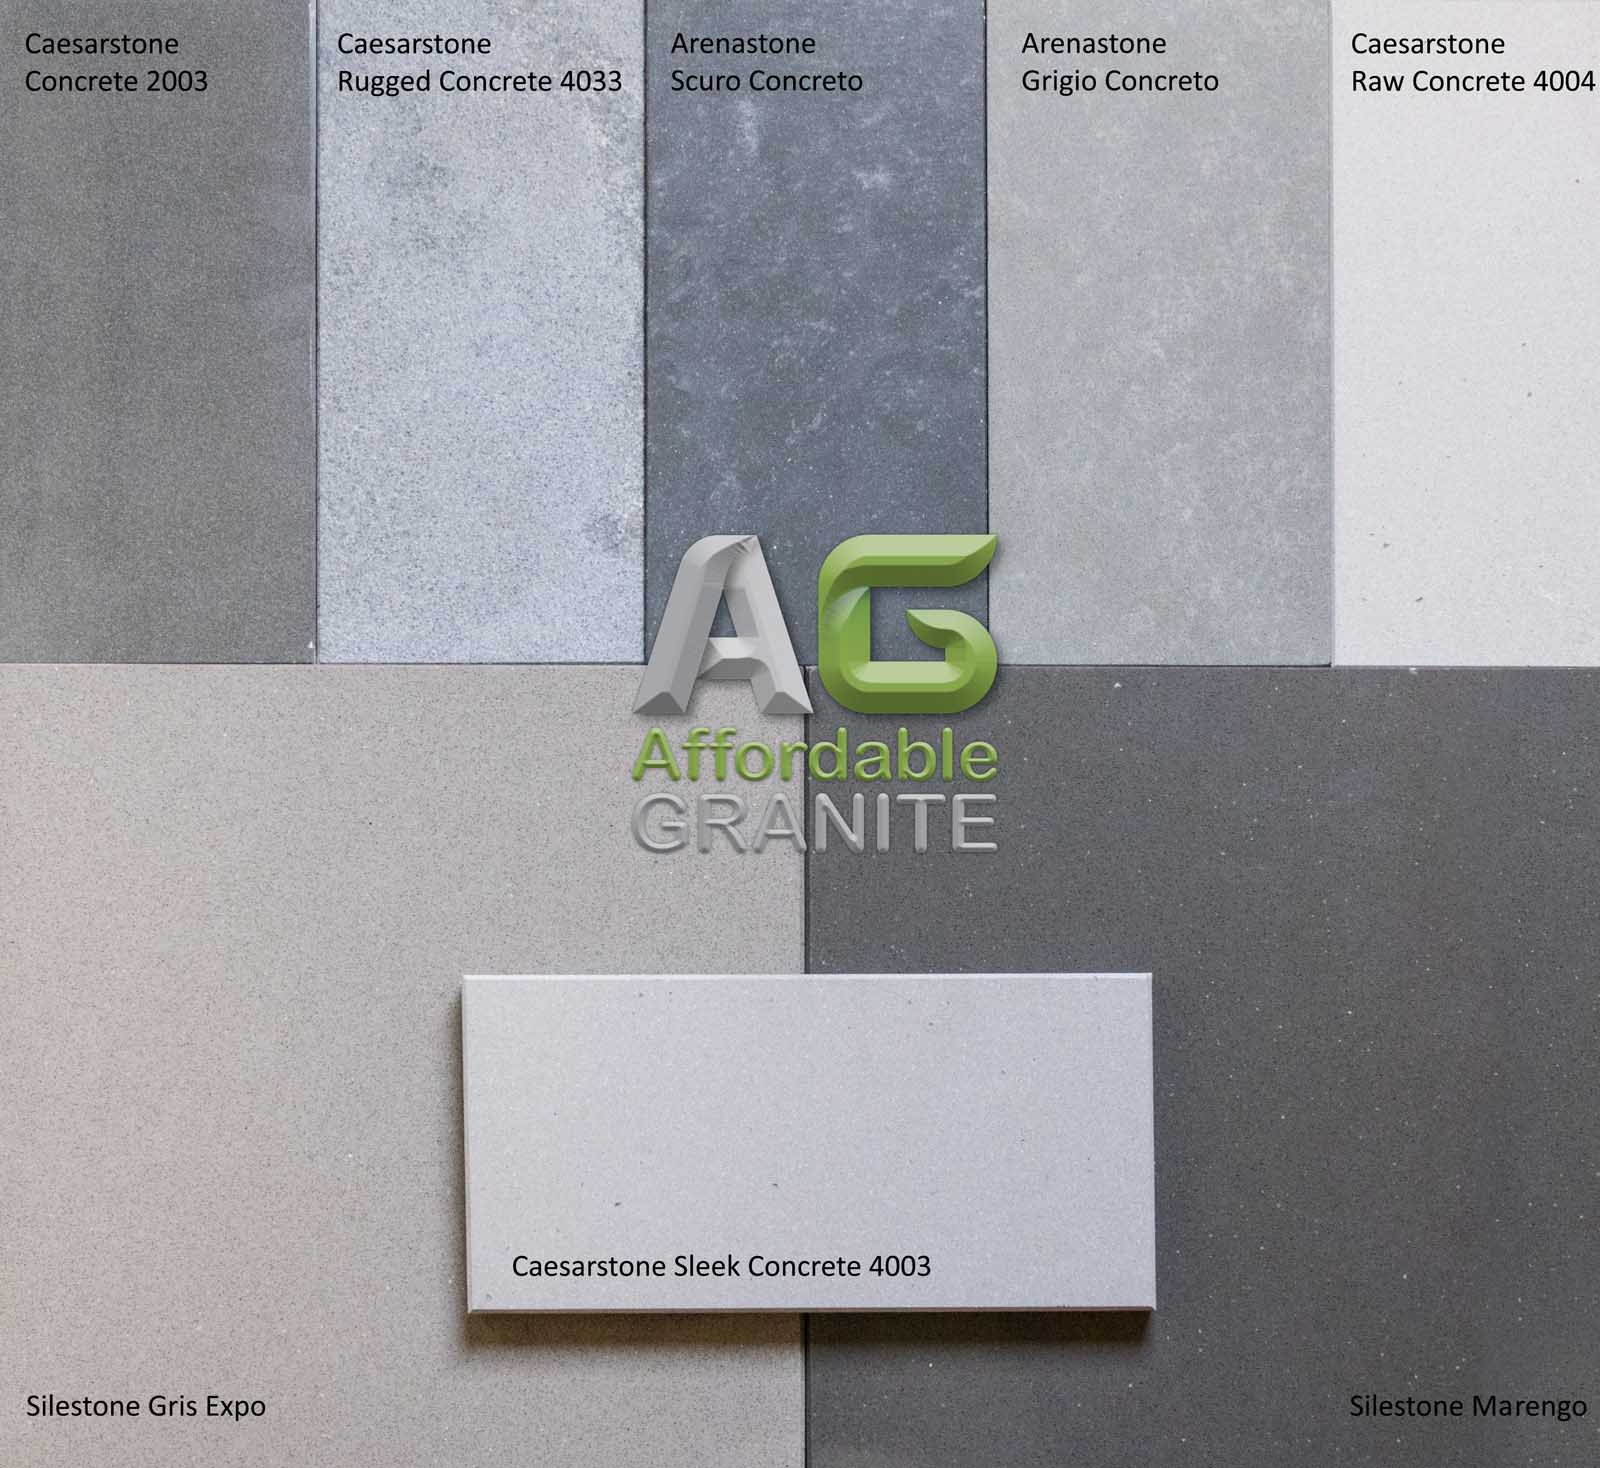 Caesarstone concrete rugged concrete raw concrete sleek arenastone scuro concreto grigio concreto silestone gris expo marengo concreto August 2017a